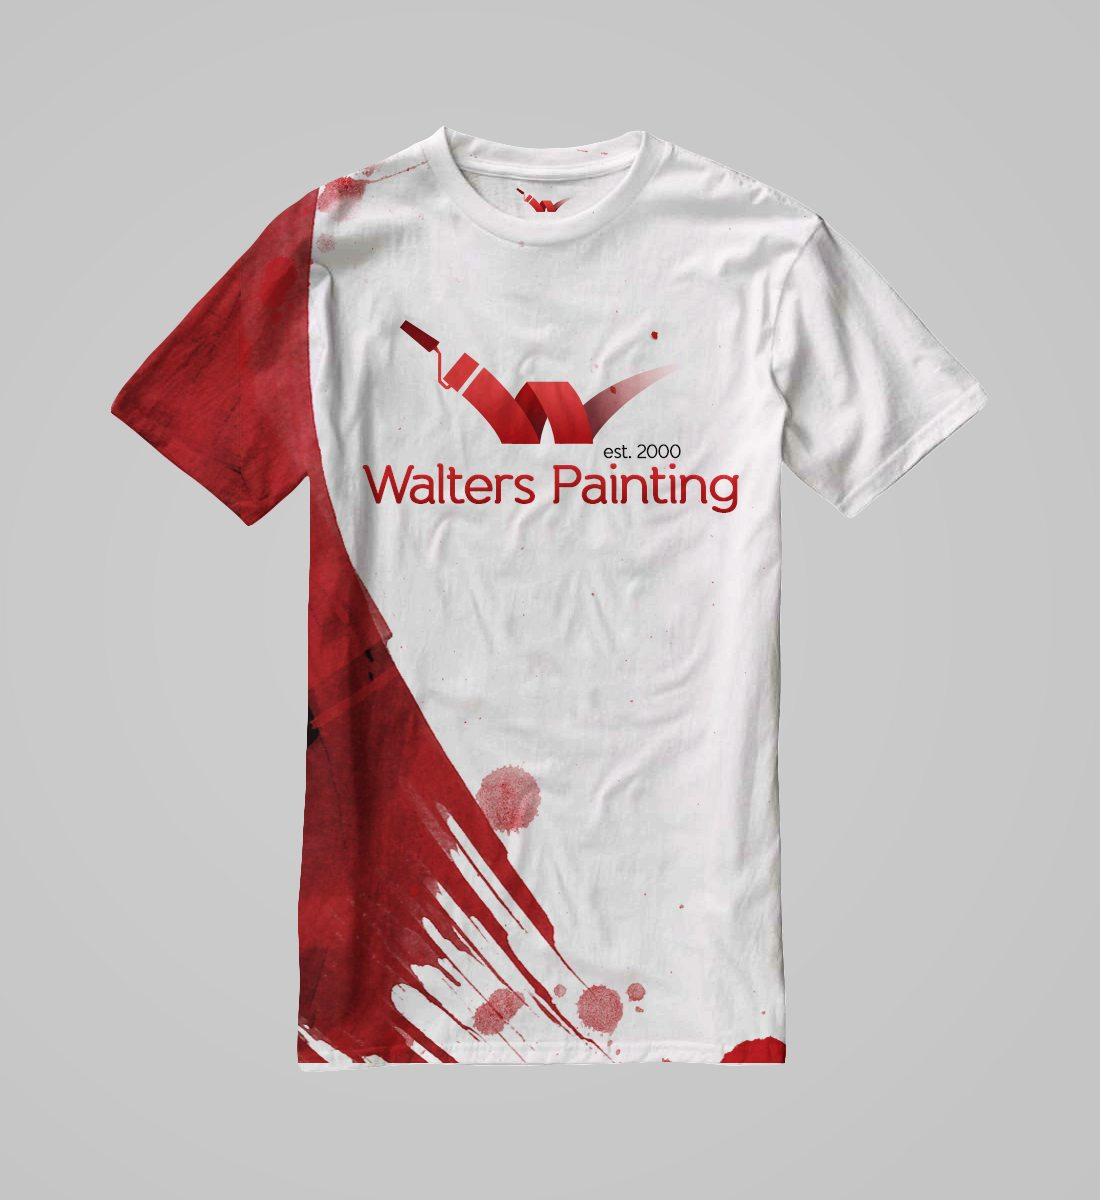 Walters Painting Branded T Shirt Design